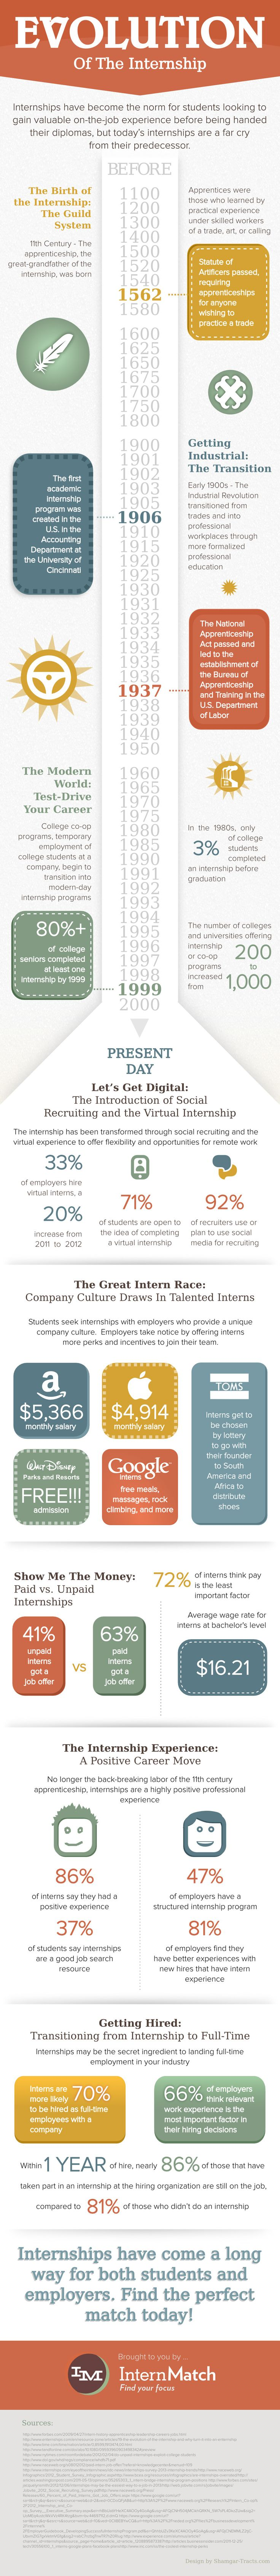 The evolution of the internship and why gaining experience out of the classroom is important.